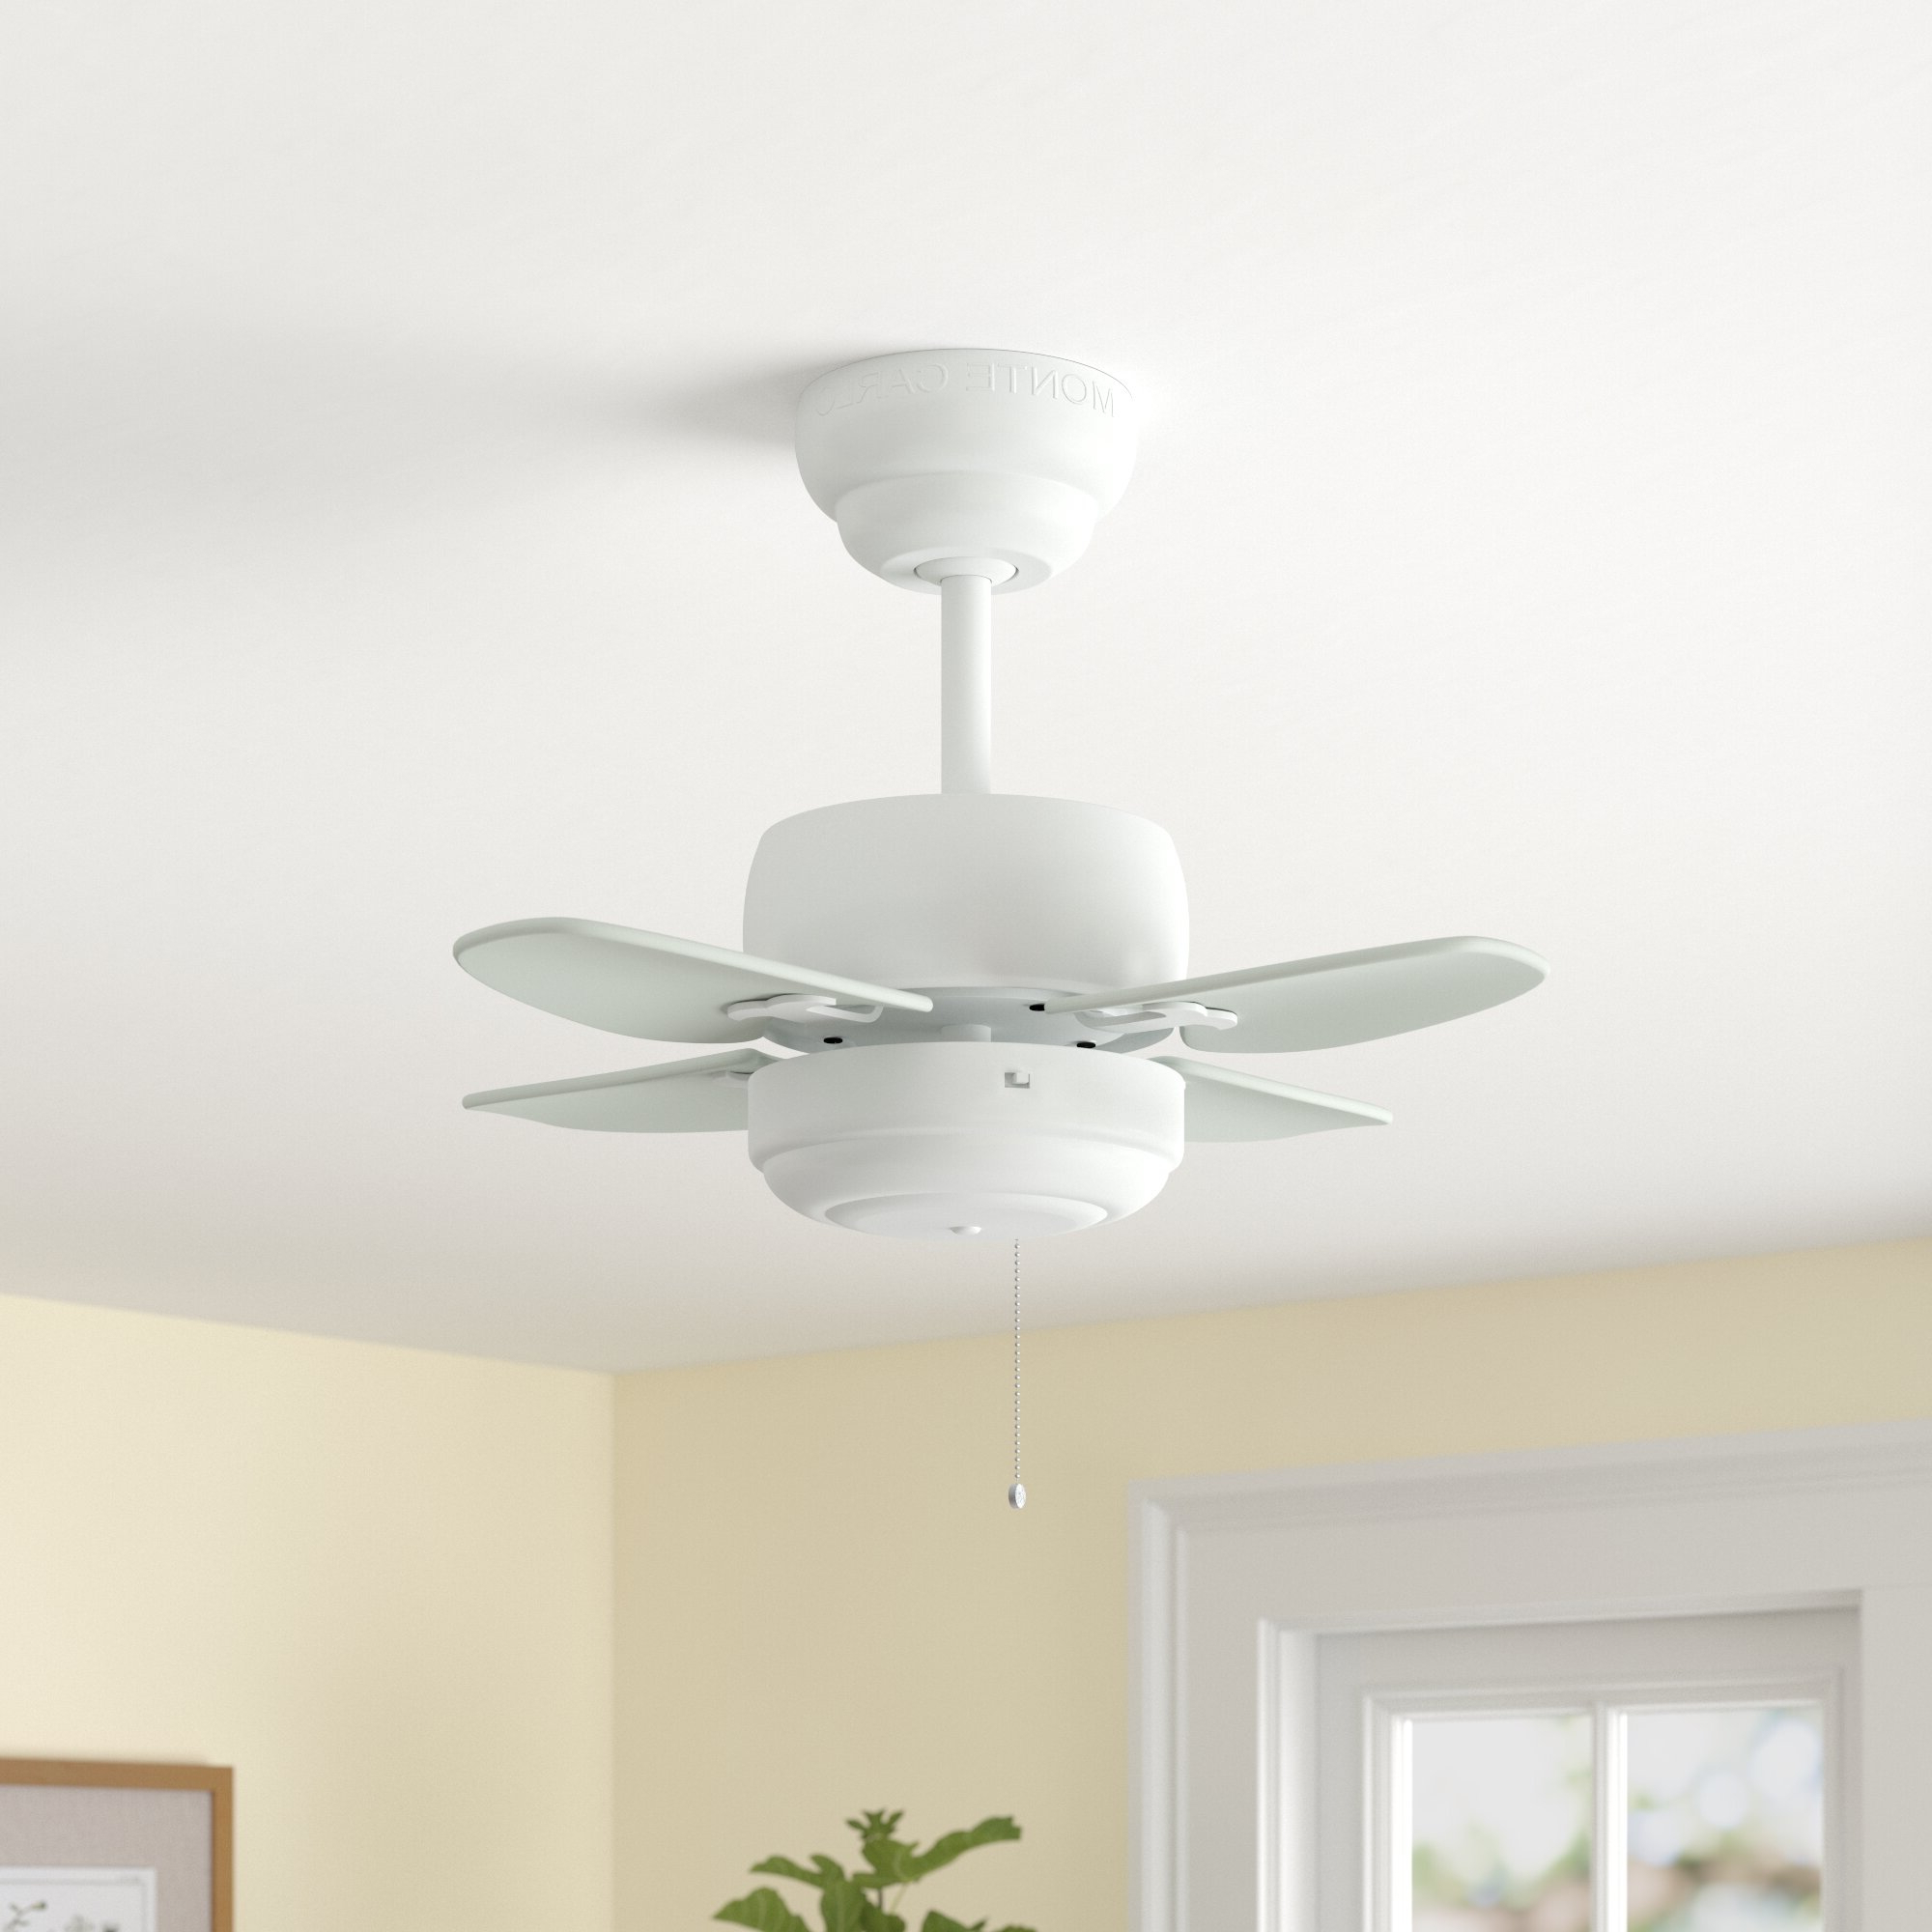 "20"" Hemsworth 4 Blade Ceiling Fan With Recent Stewardson 4 Blade Ceiling Fans (Gallery 3 of 20)"